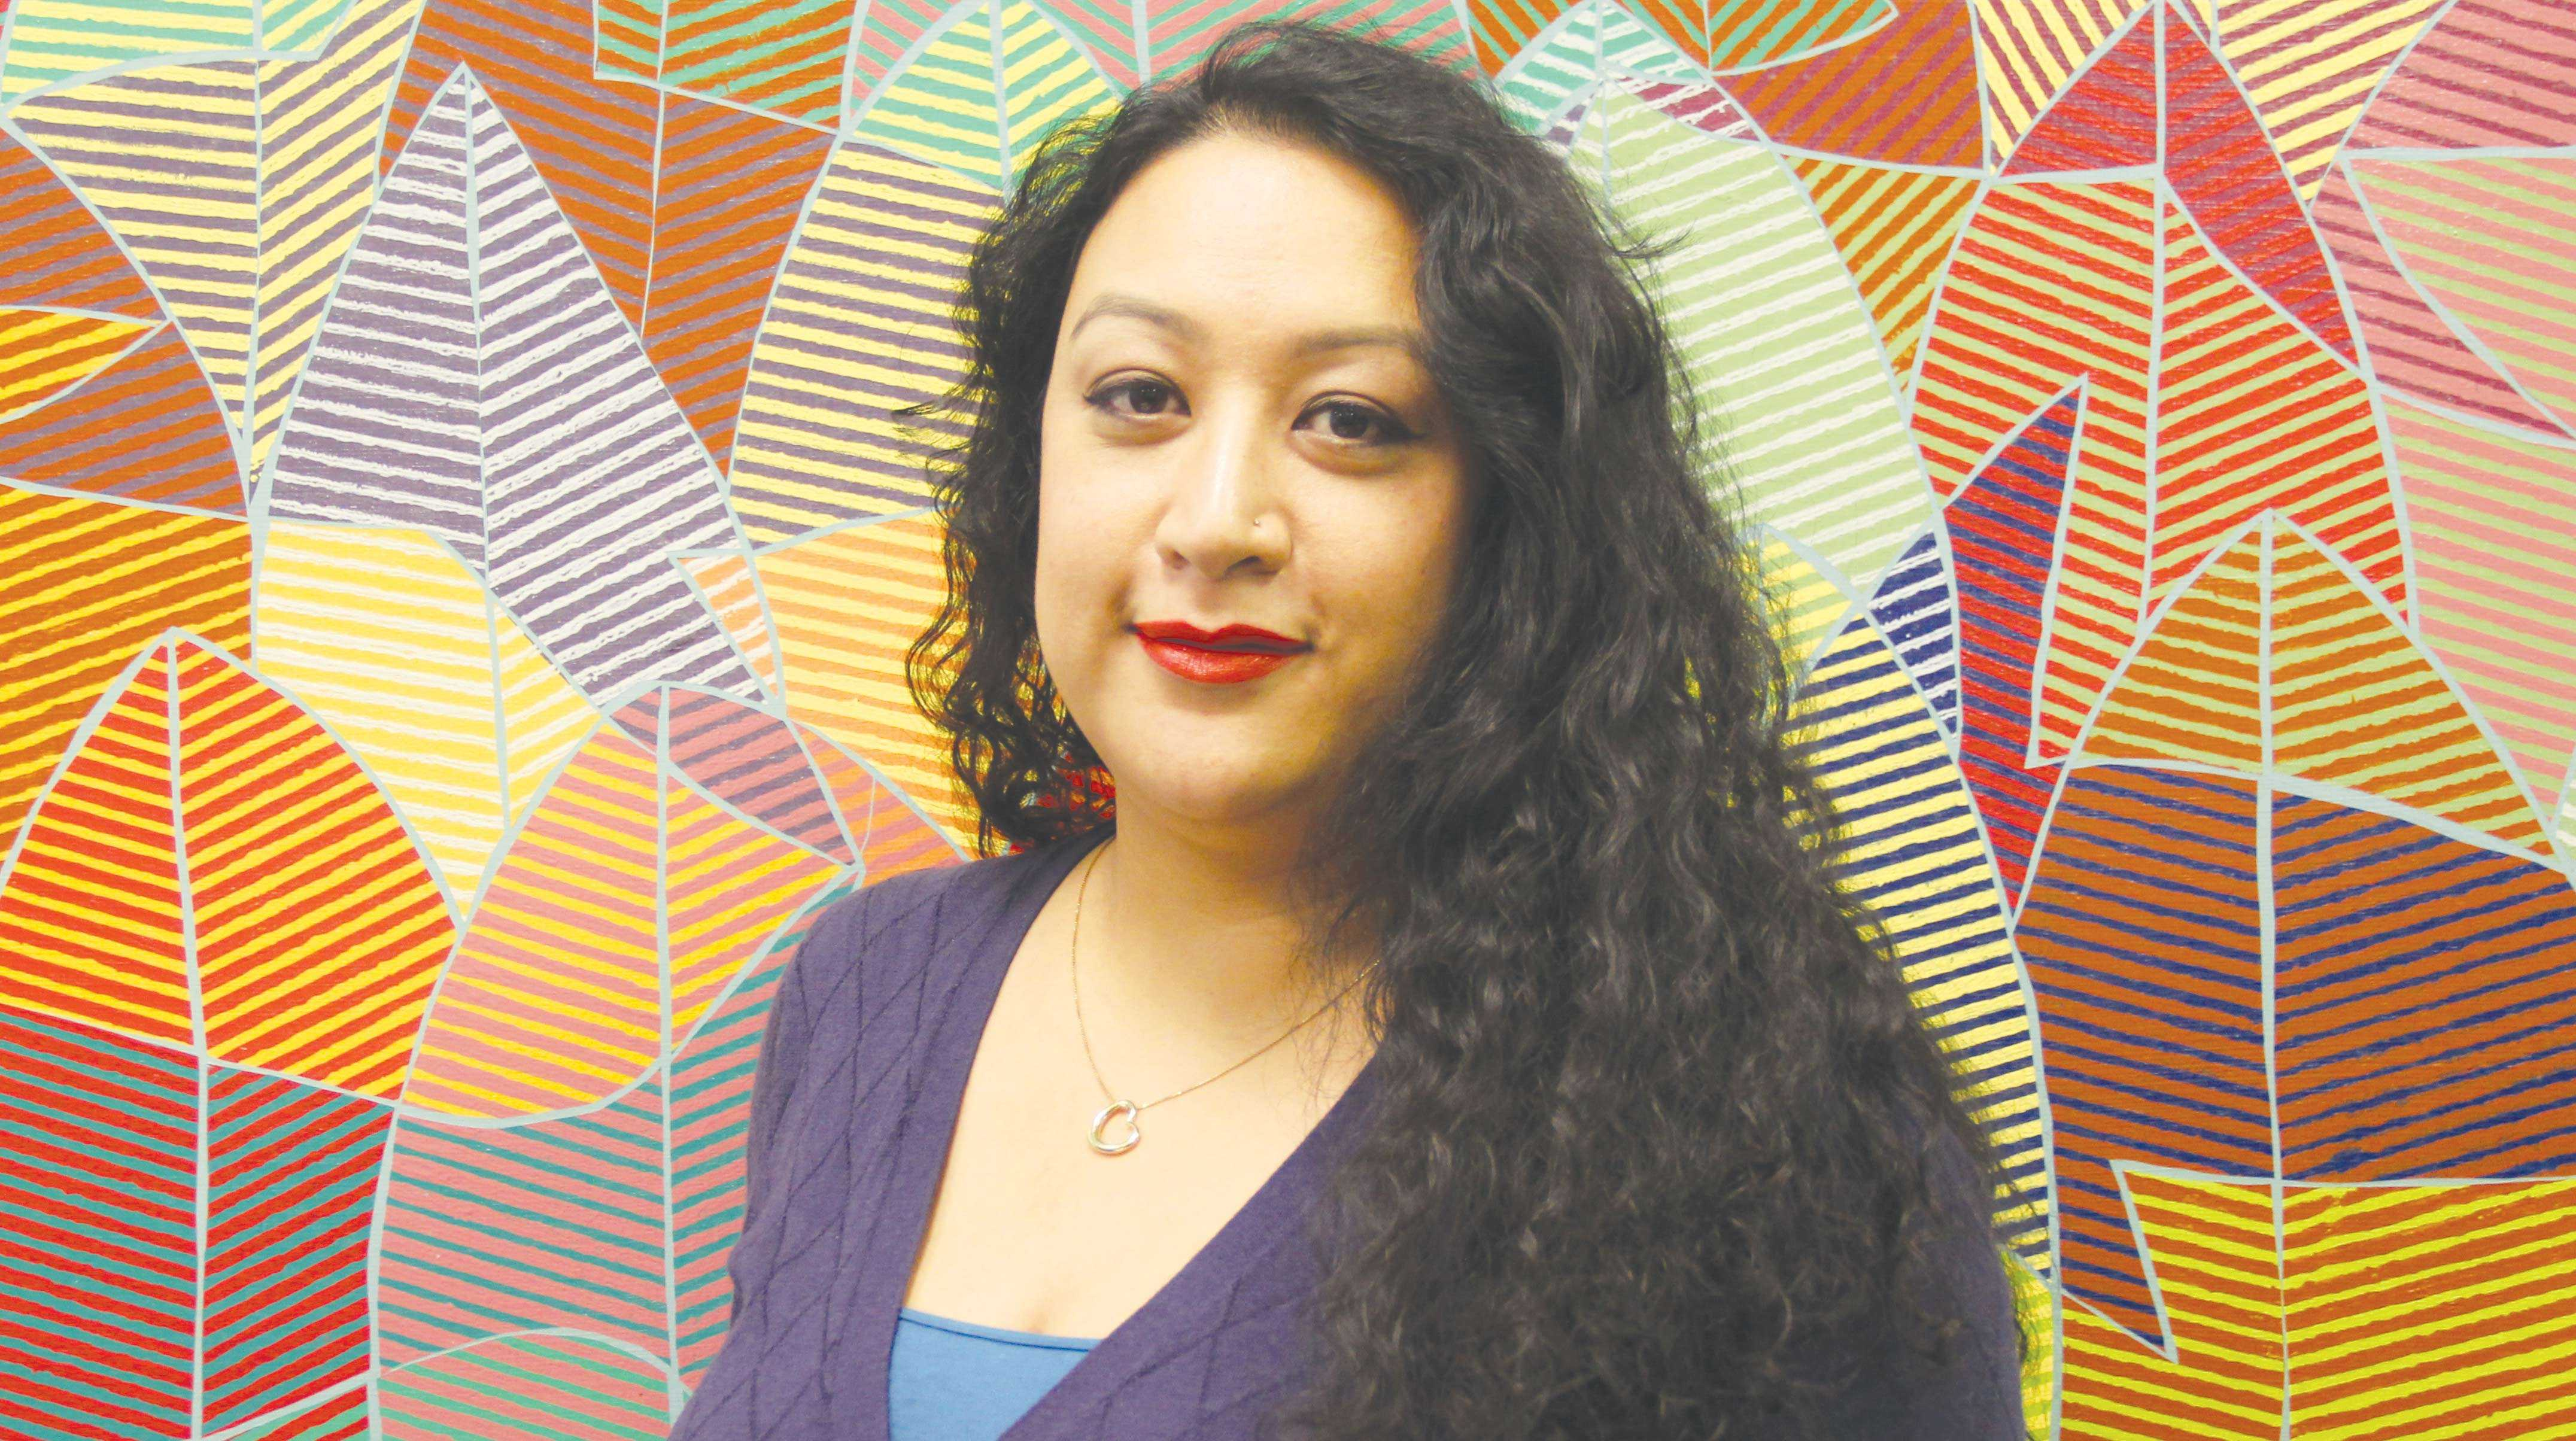 Shitu Rajbhandari worked in FMU's Writing Center for a year before becoming an adjunct professor and Assistant Director of the Writing Center.